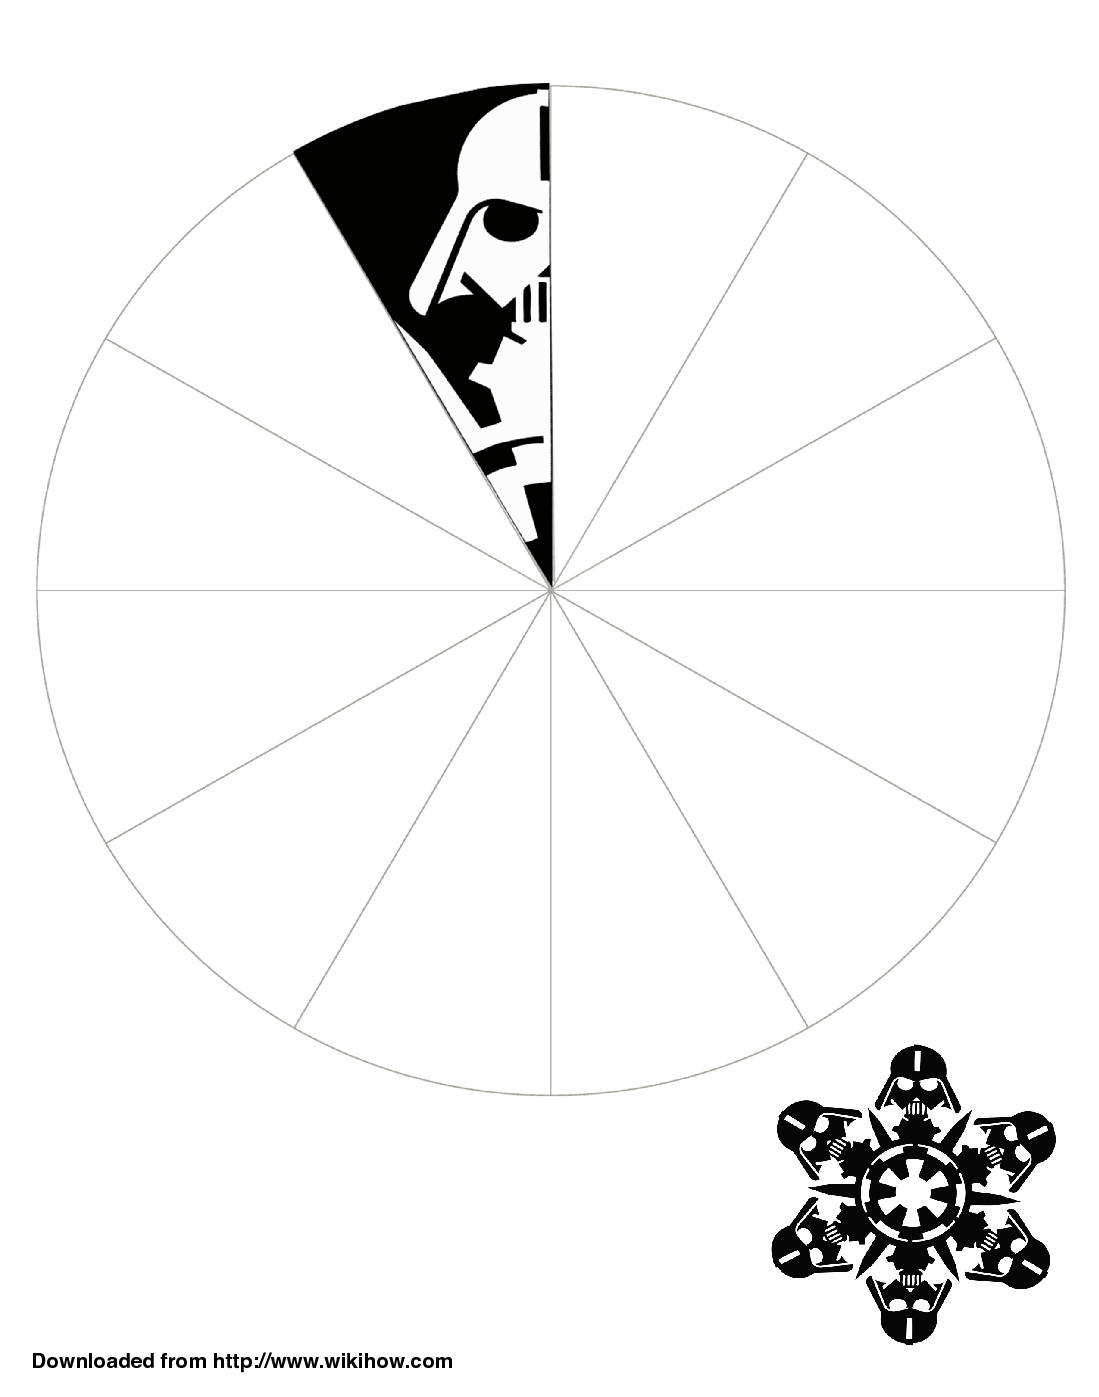 Printable darth vader snowflake template wikihow for Paper star cut out template